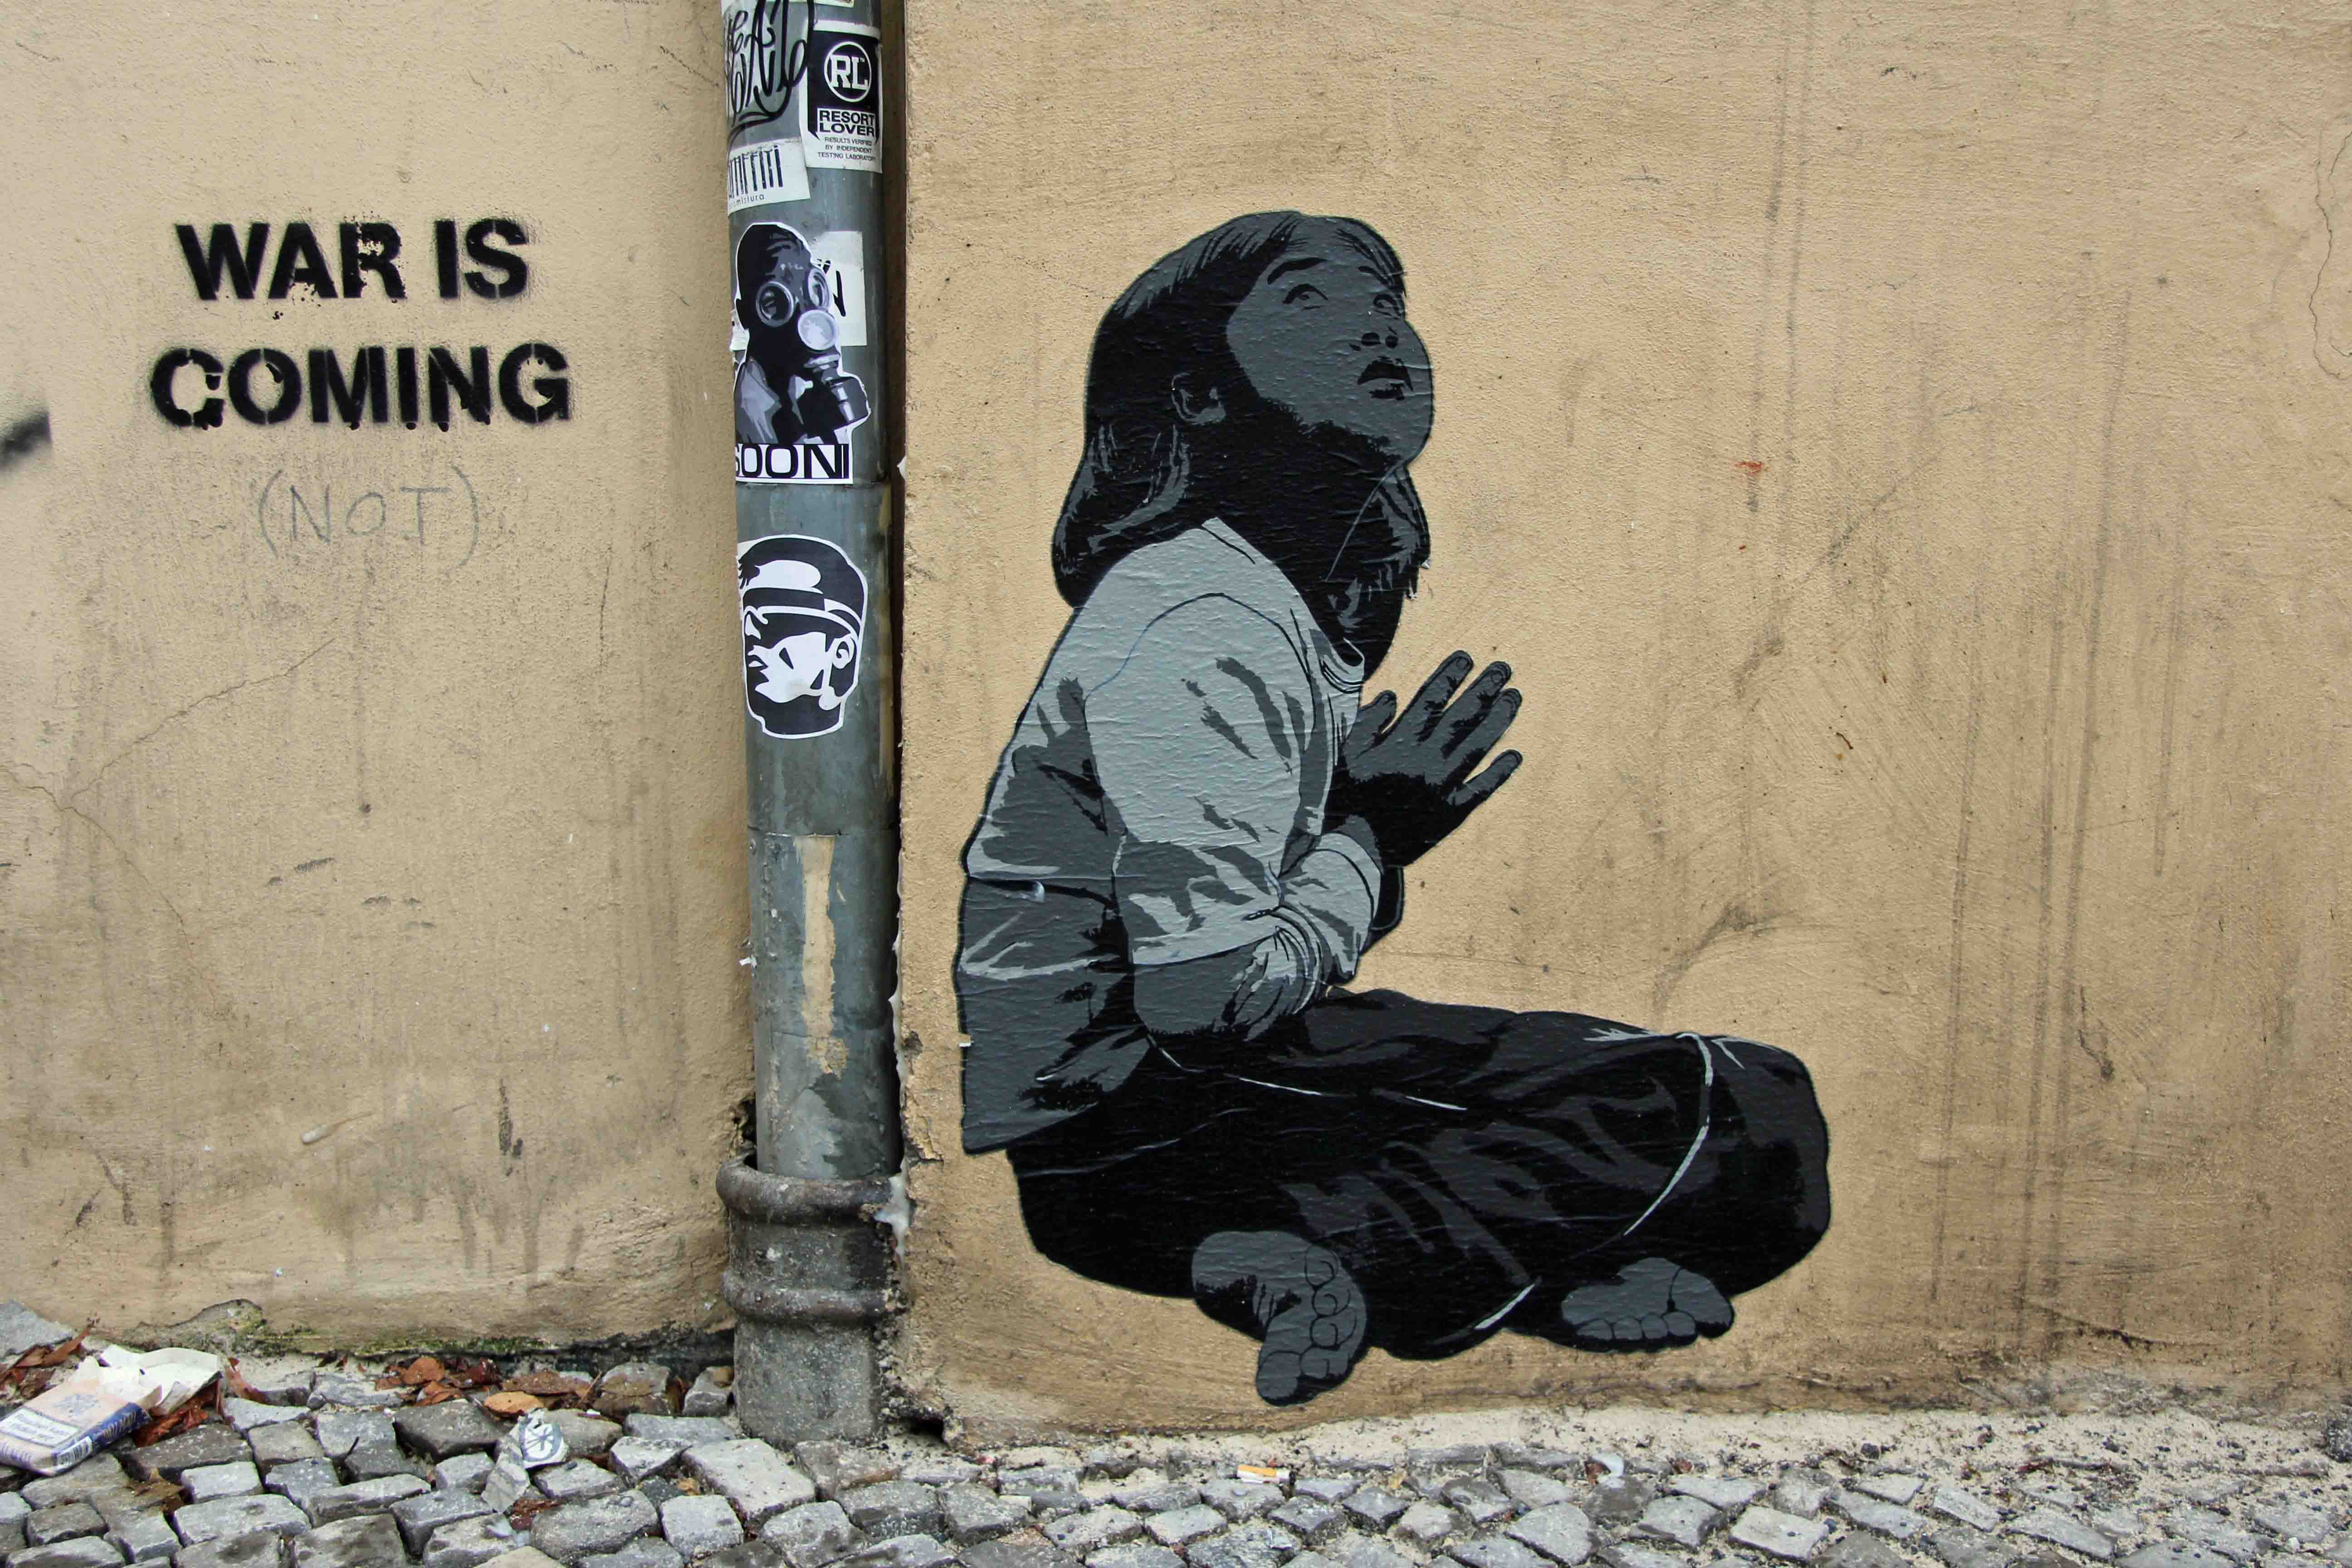 Praying - Street Art by ALIAS in Berlin